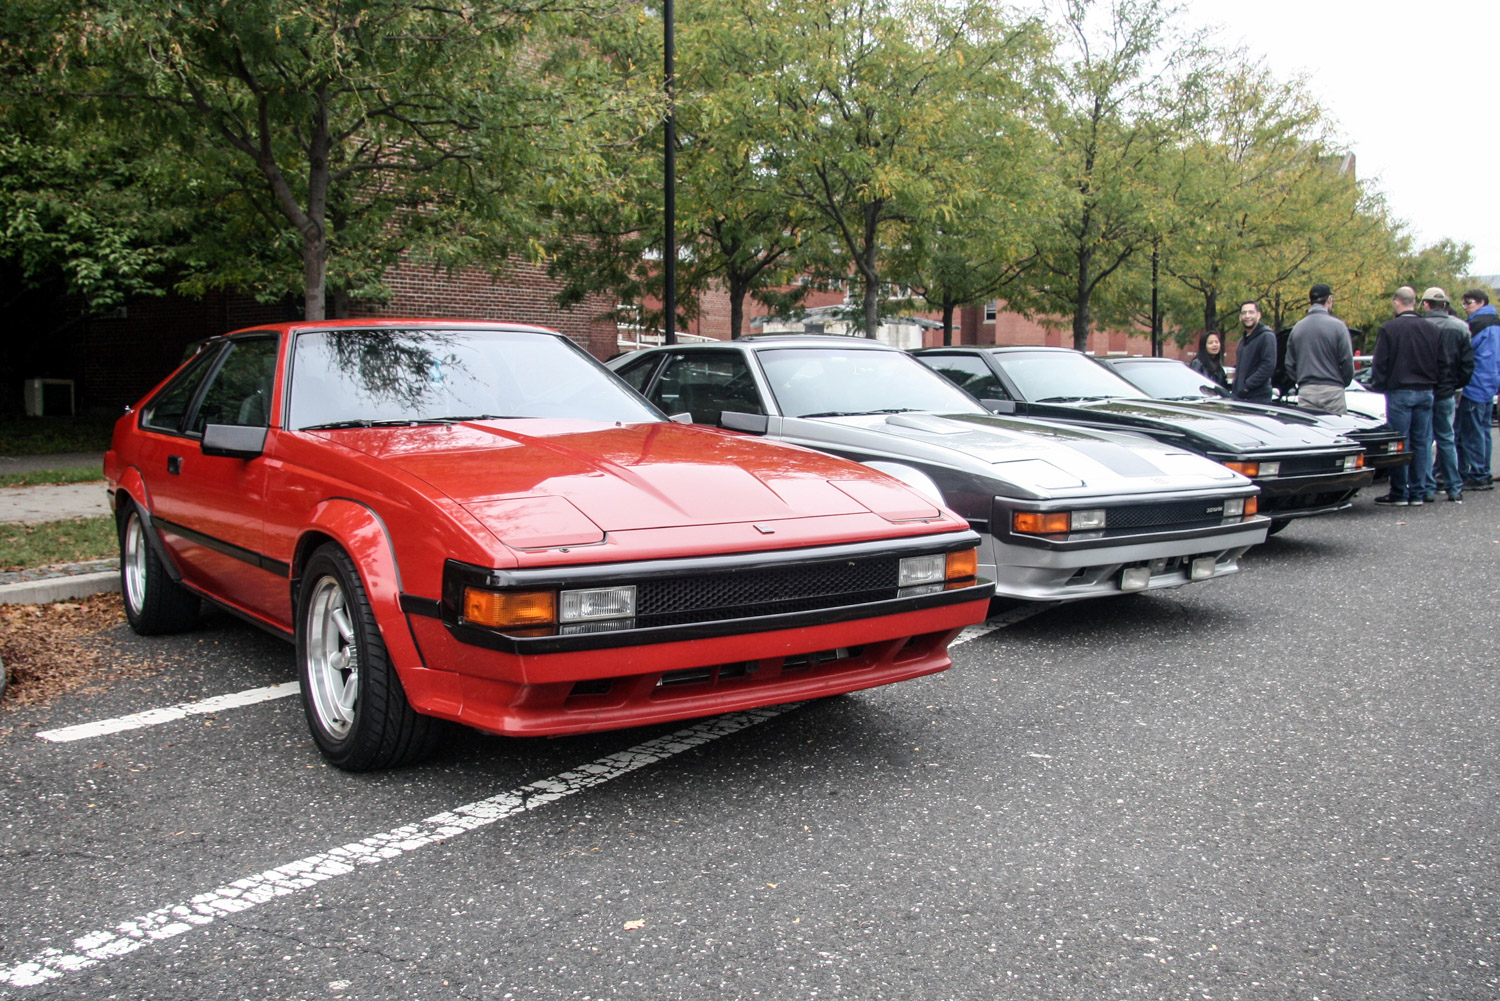 What's an '80s car show without Toyota Supras?